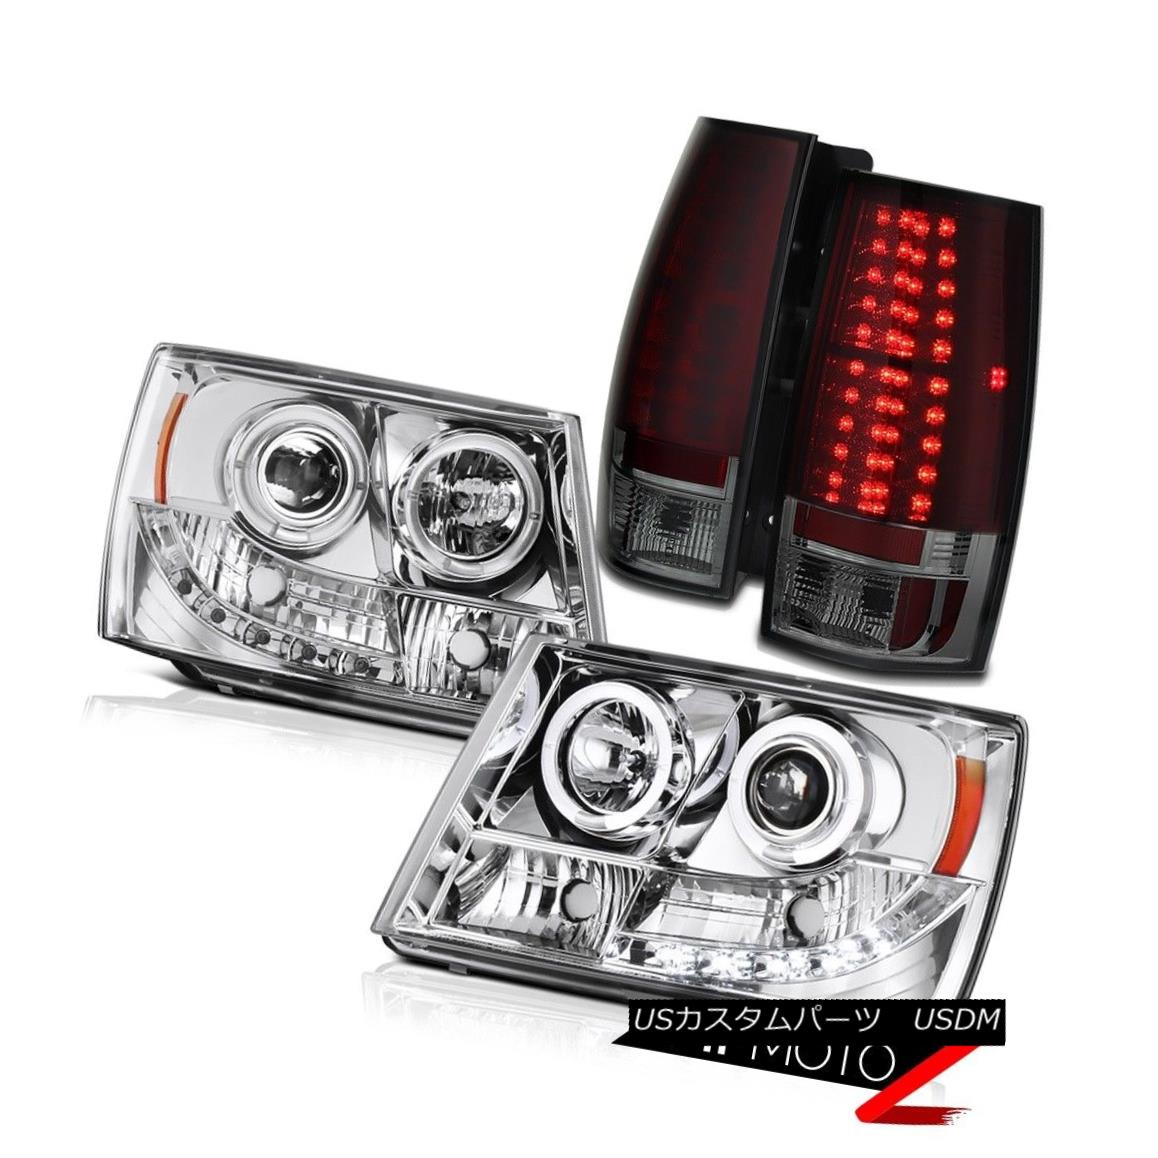 ヘッドライト Suburban/Tahoe V8 07-13 Chrome Halo Projector Headlight+RED/SMOKE+LED Tail Light Suburban / Tahoe V8 07-13クロームハロープロジェクターヘッドライト+ RED /  SMOKE + LEDテールライト